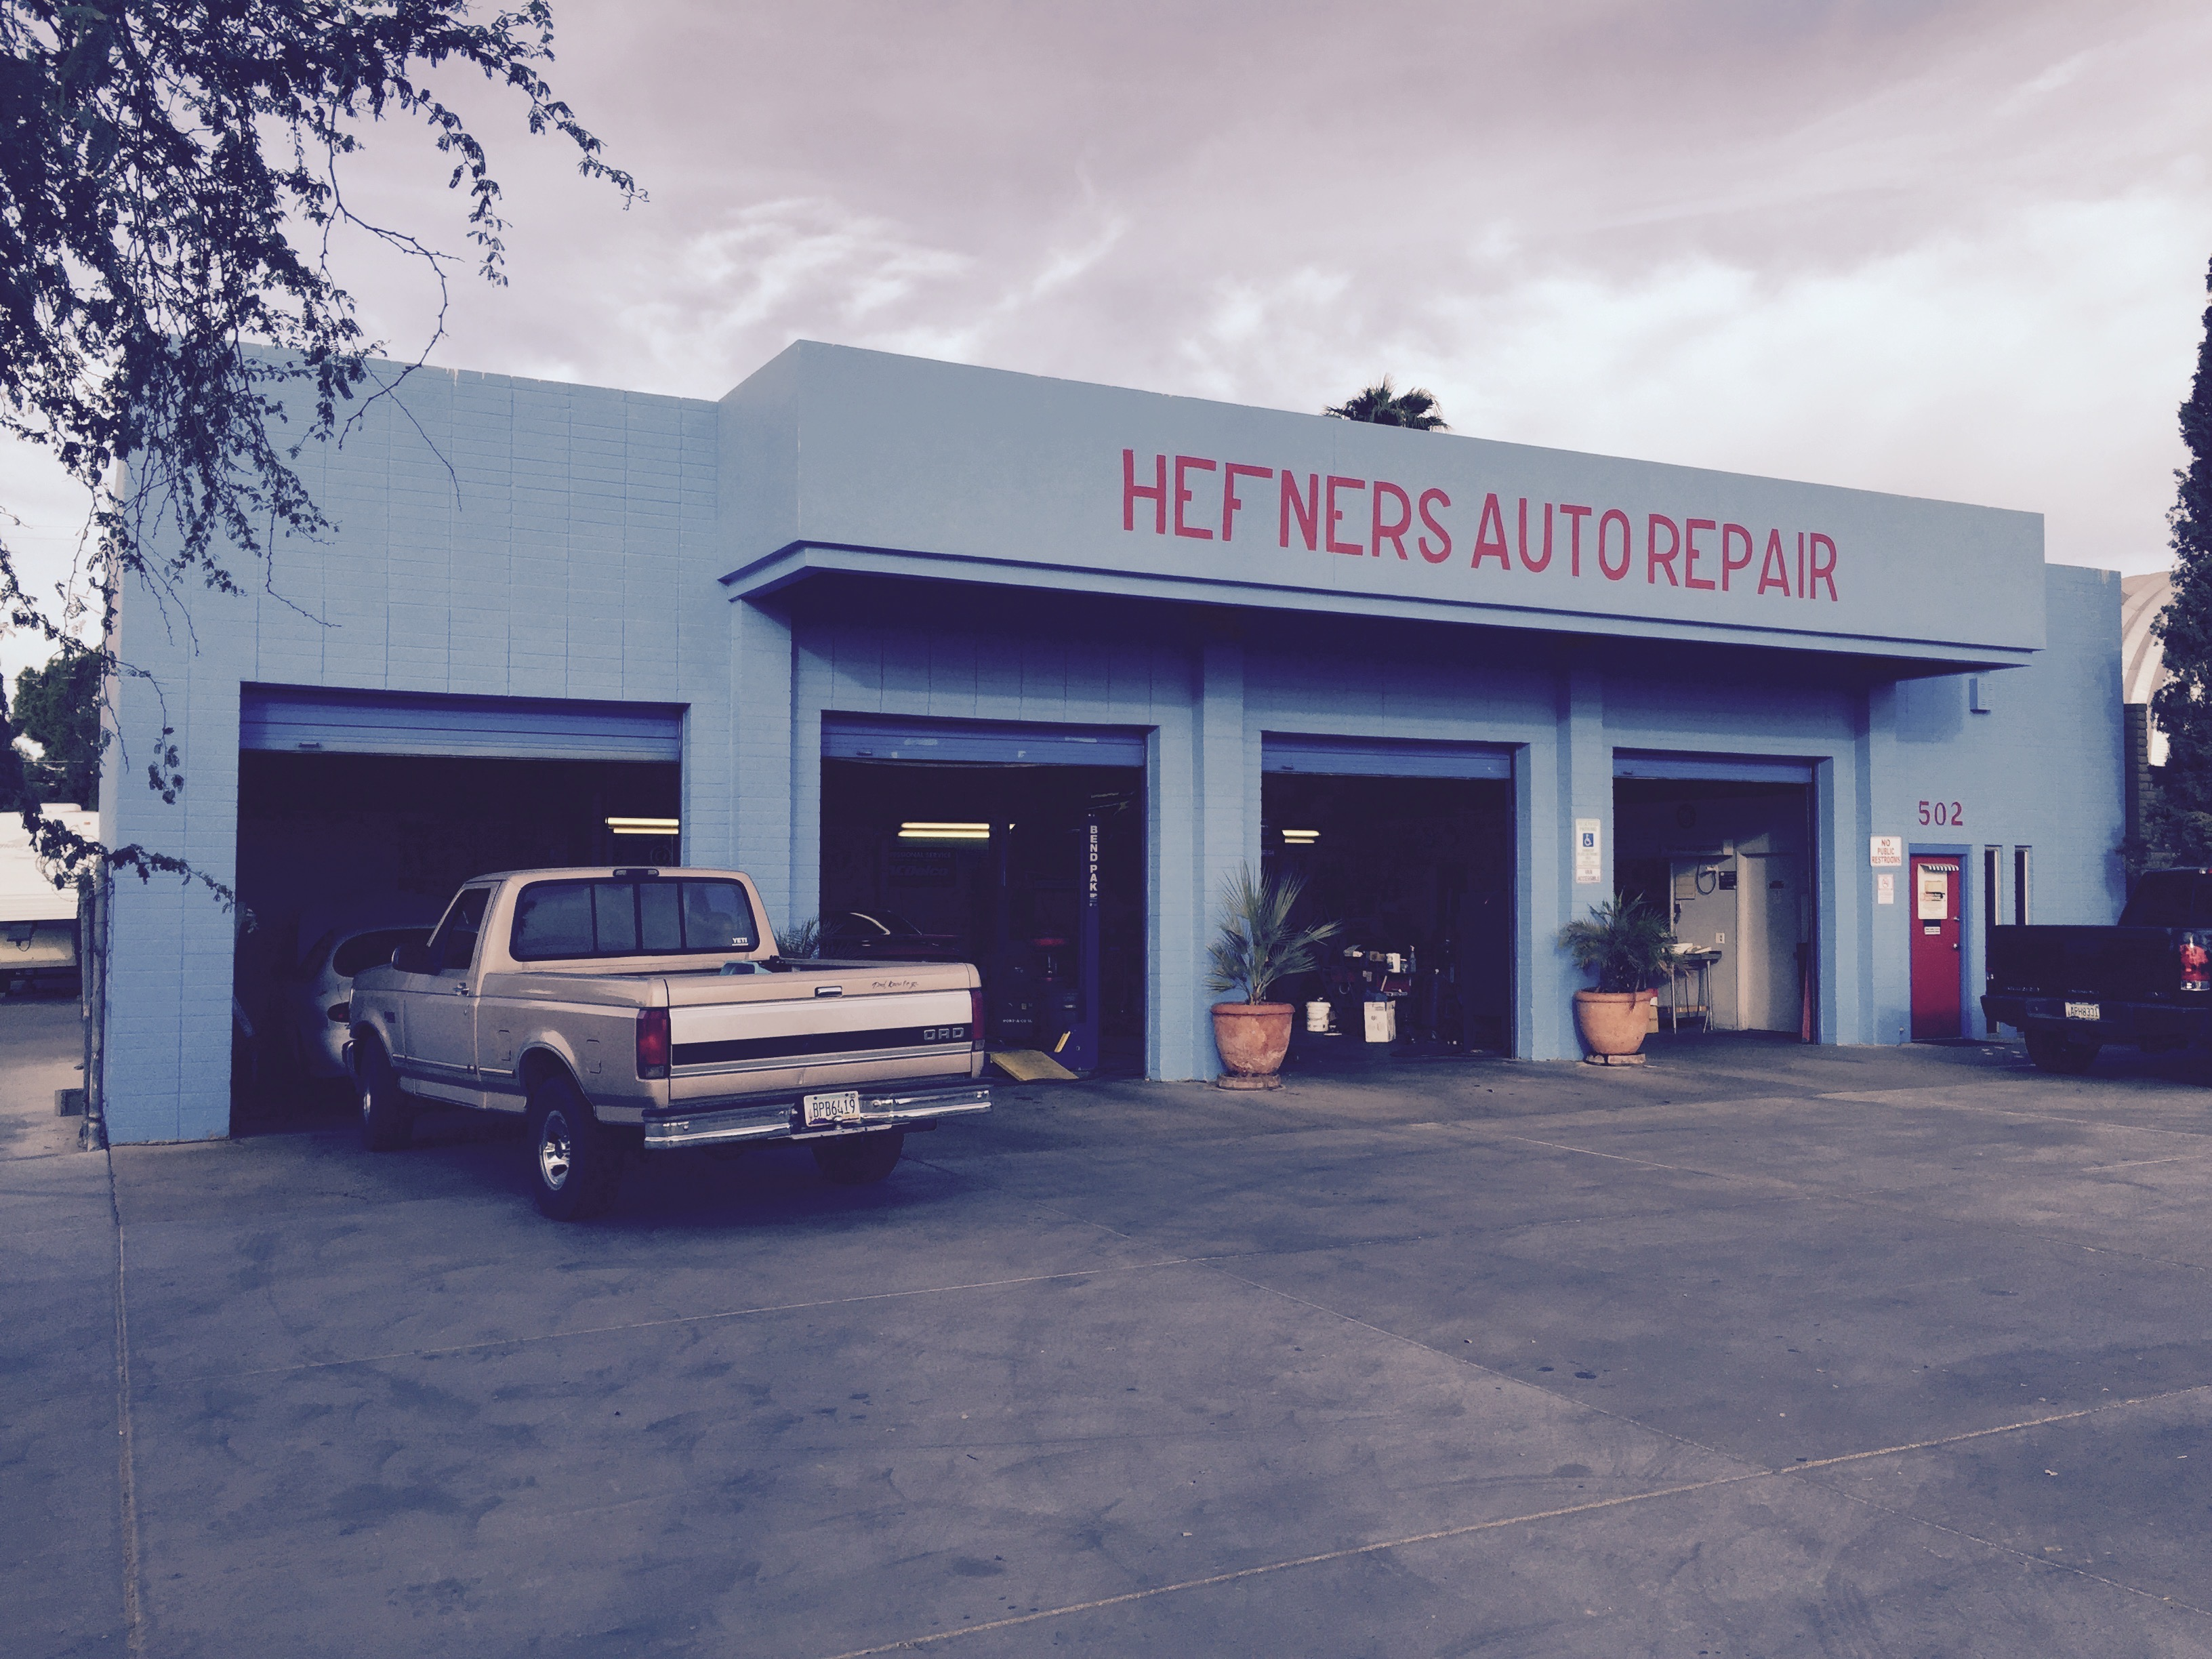 Blue Building, Family Business – Old-Fashioned Family-Owned Hefners Auto Repair Shop